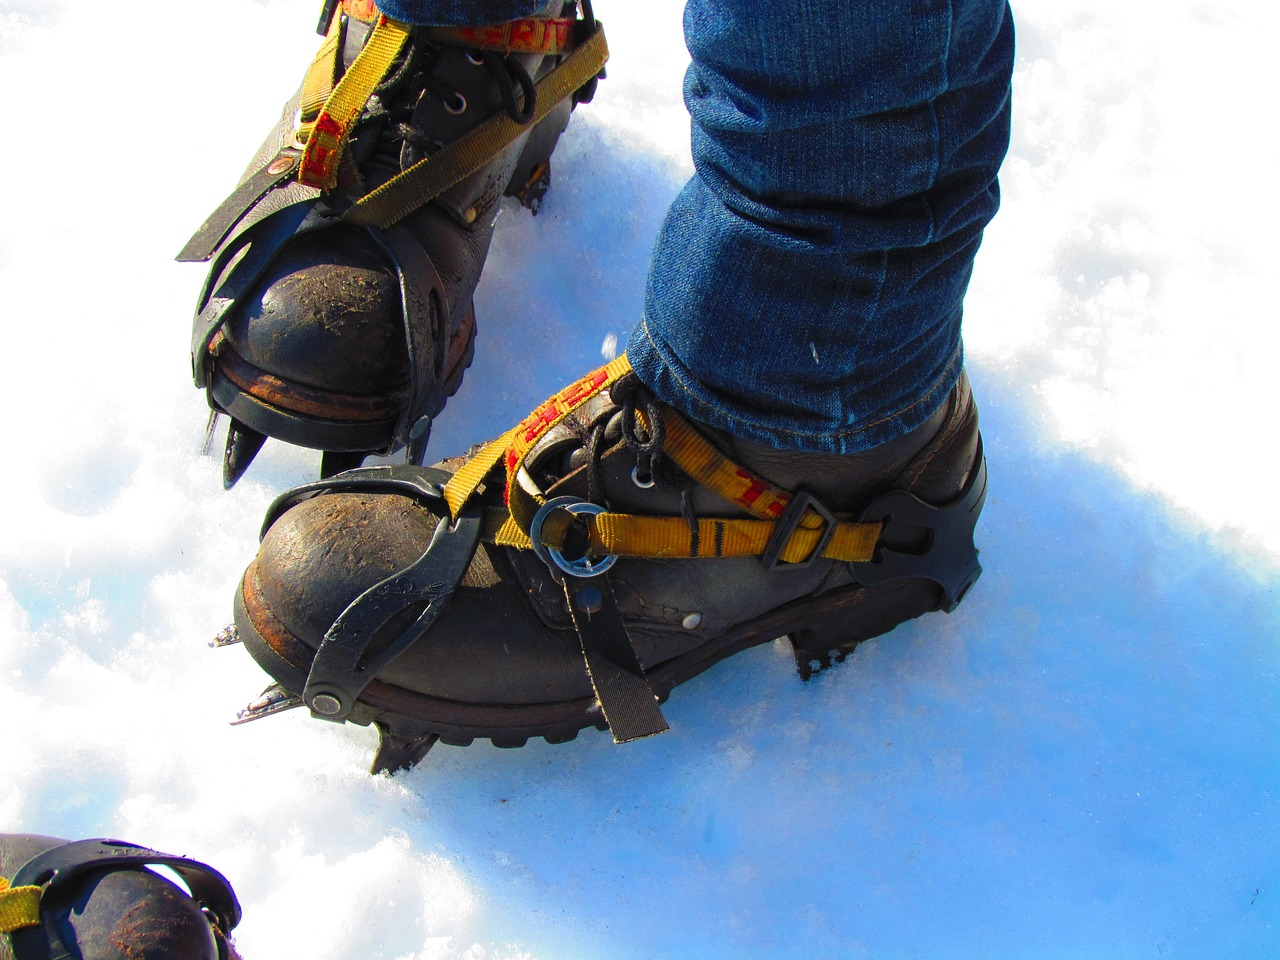 Crampons and microspikes reviewed